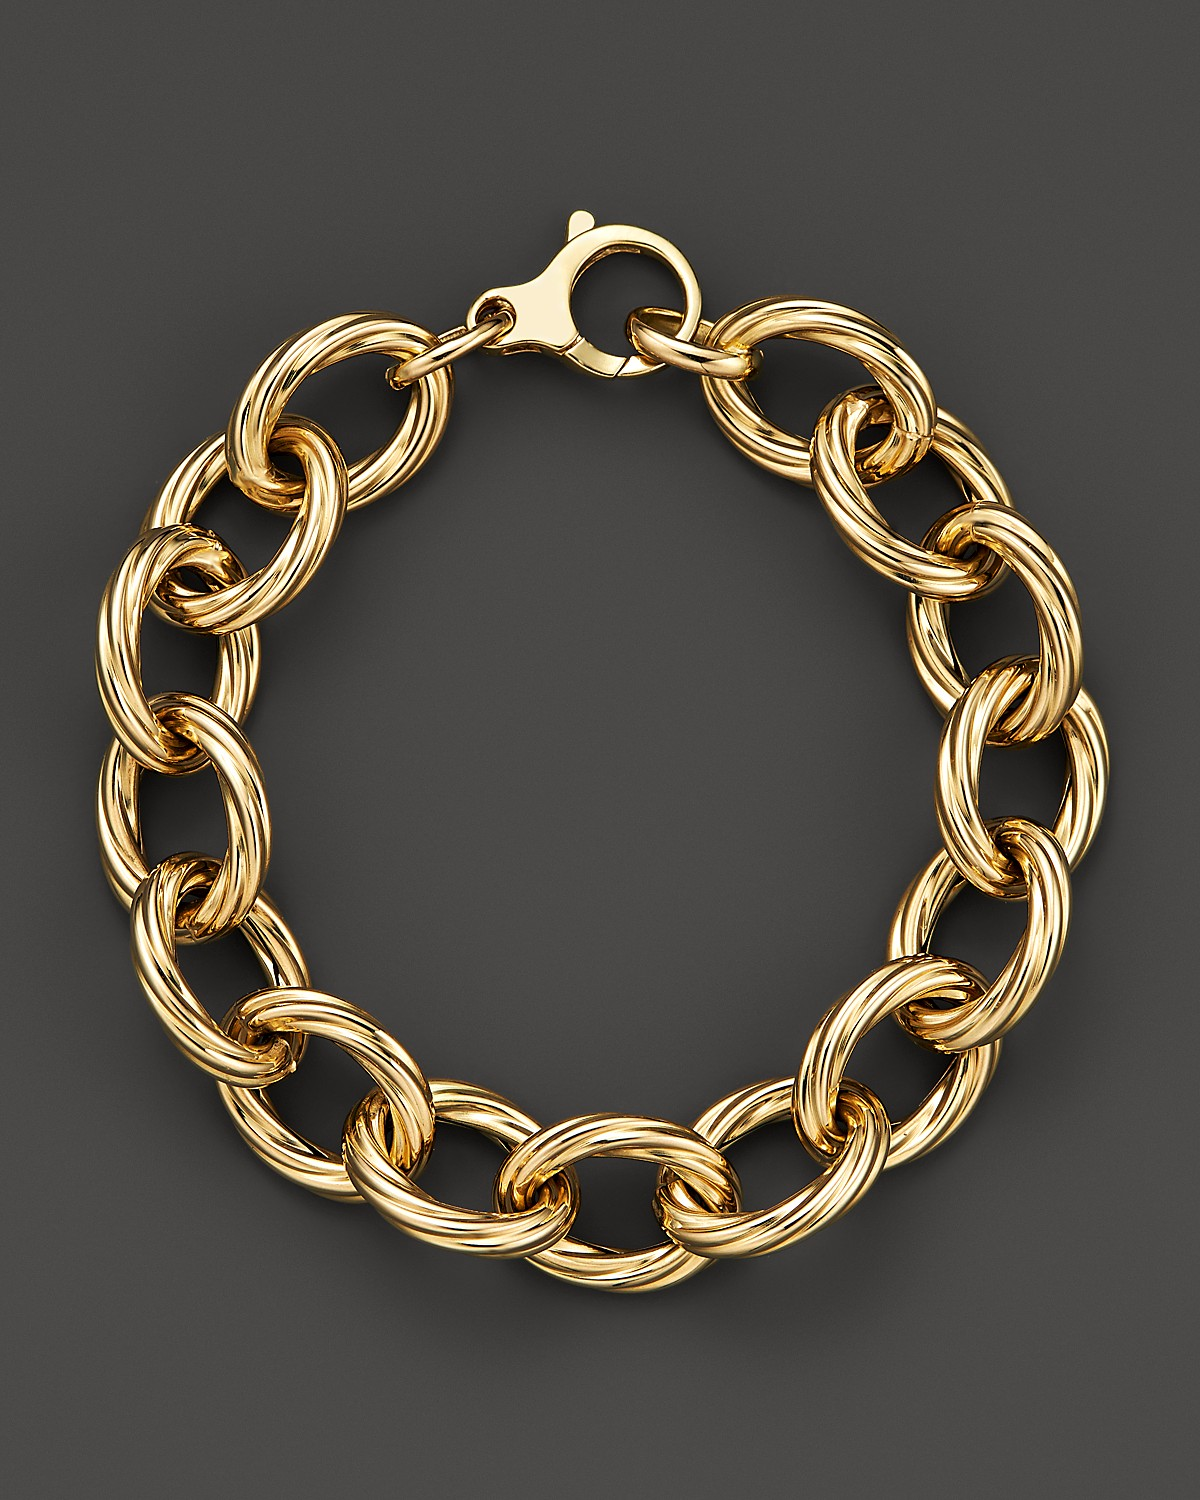 buy gold woman jewelry detail handmade product bracelets on dubai high new bracelet women for wholesale alibaba quality